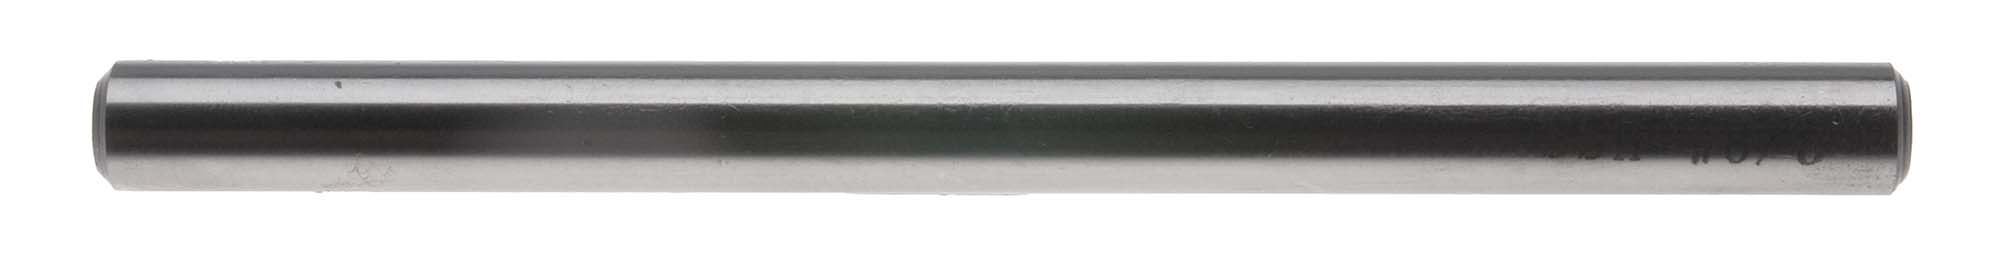 "#57 (.0430"") Jobber Length Drill Blank, High Speed Steel"